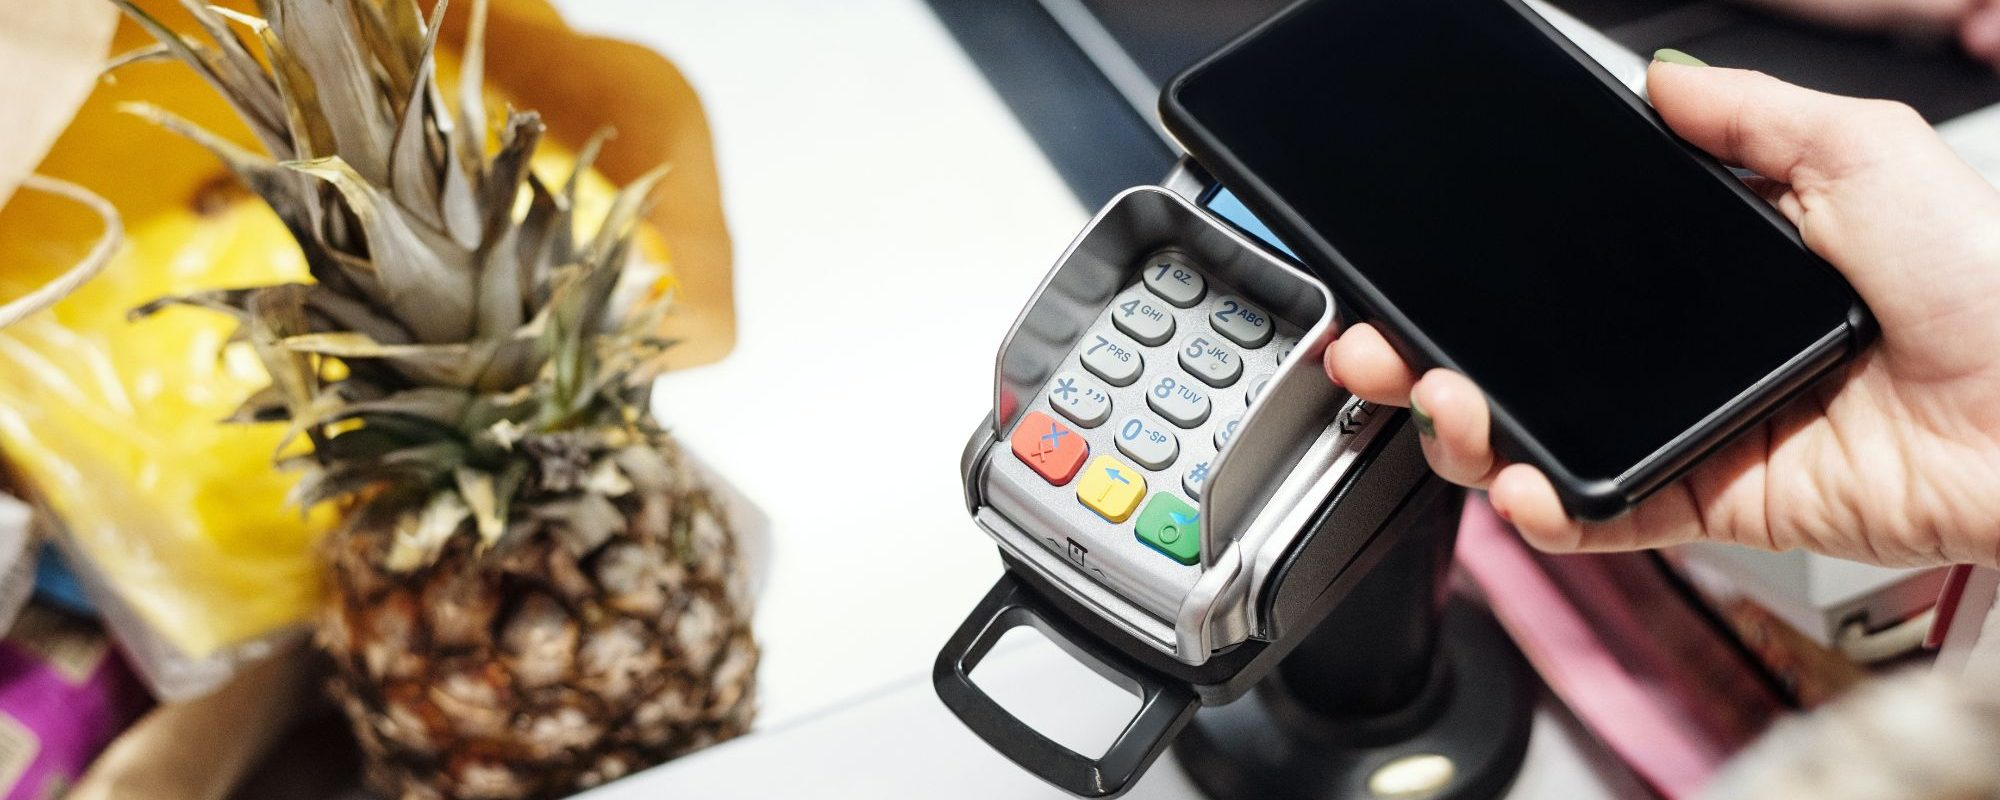 mobile payments being used to buy shopping